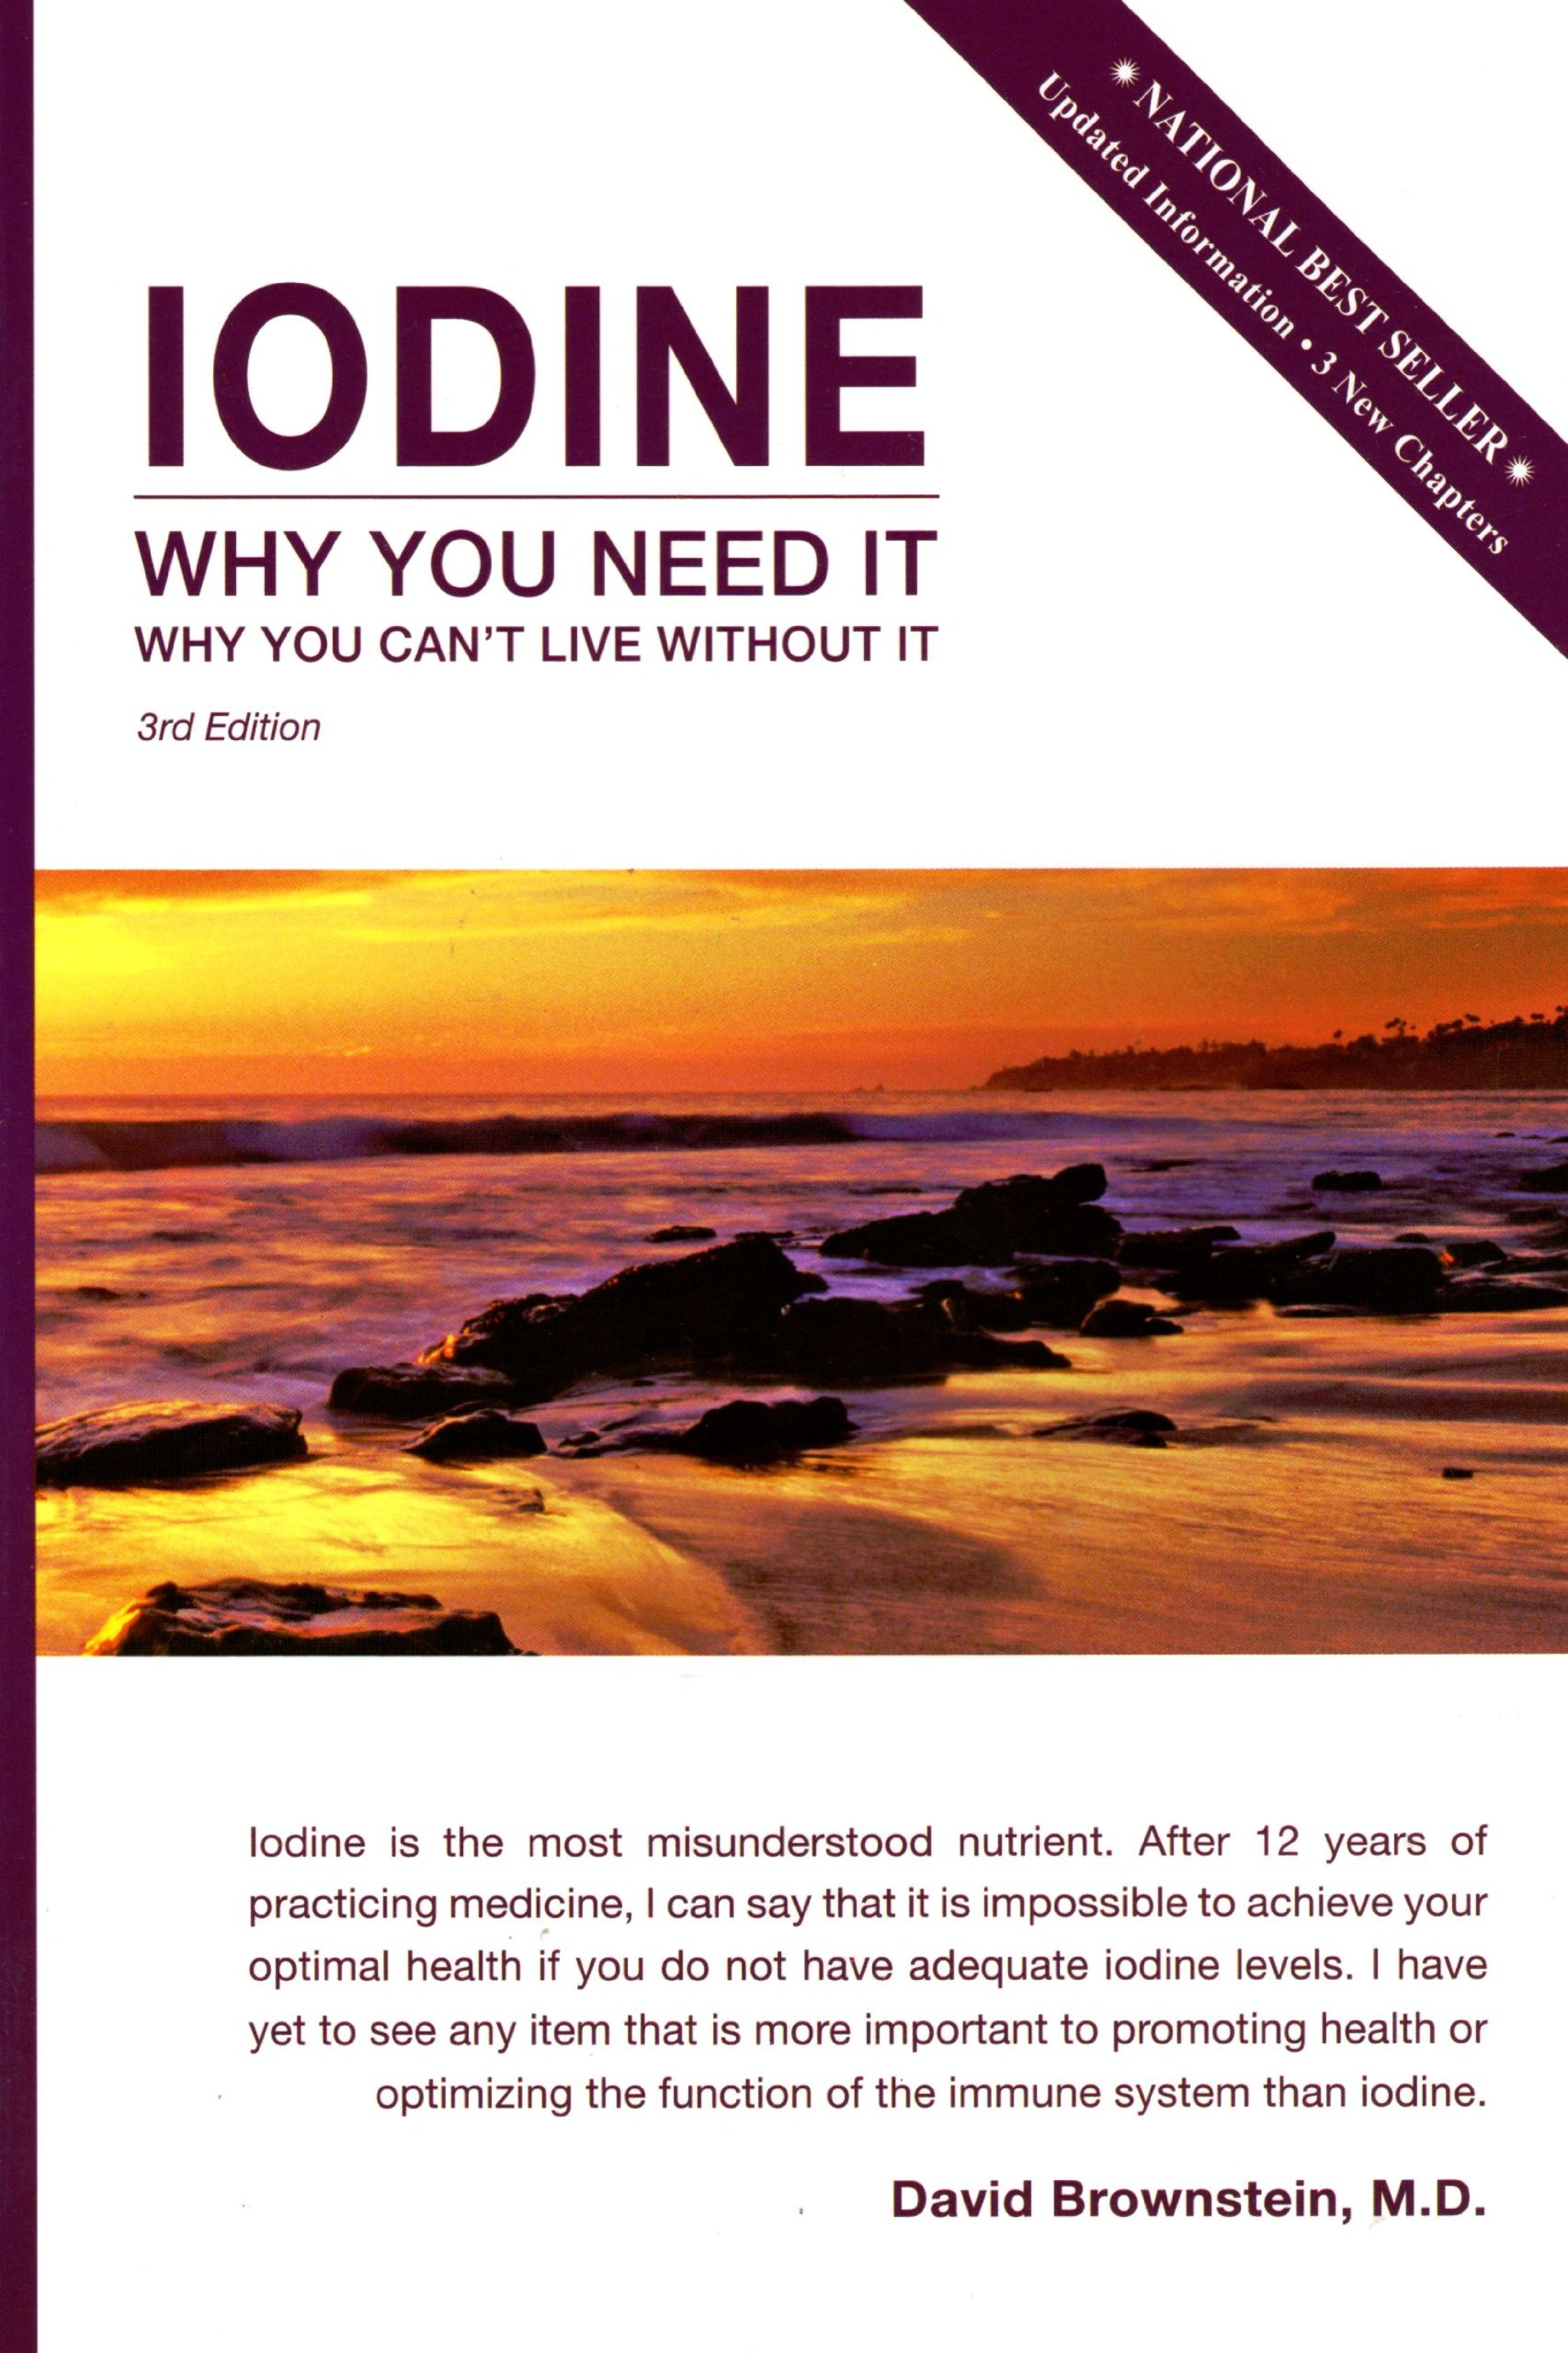 Iodine: Why You Need It, Why You Can't Live Without It: David Brownstein:  9780966088236: Amazon.com: Books